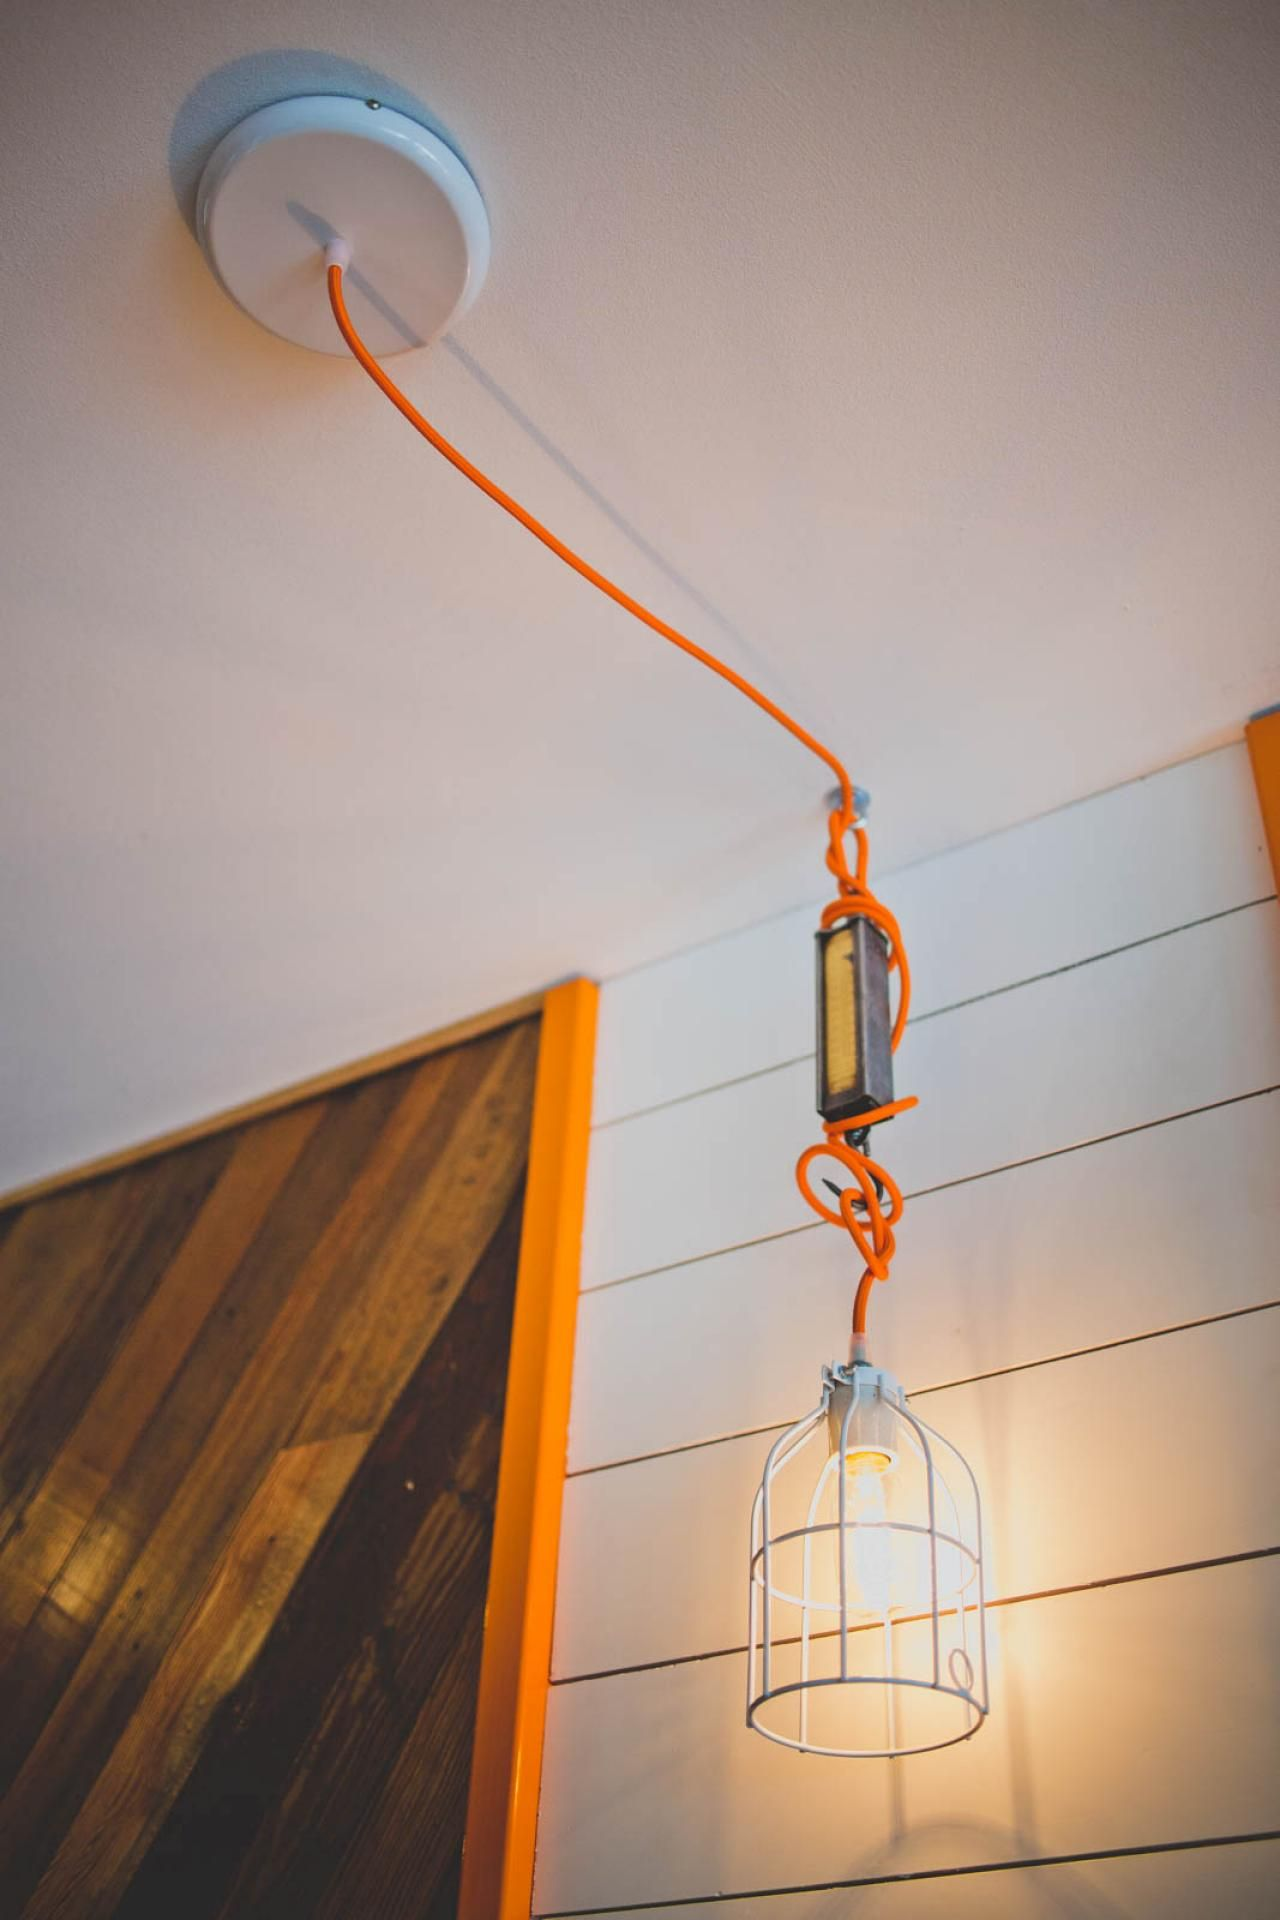 Pendants were diy with parts from color cord company and old bank